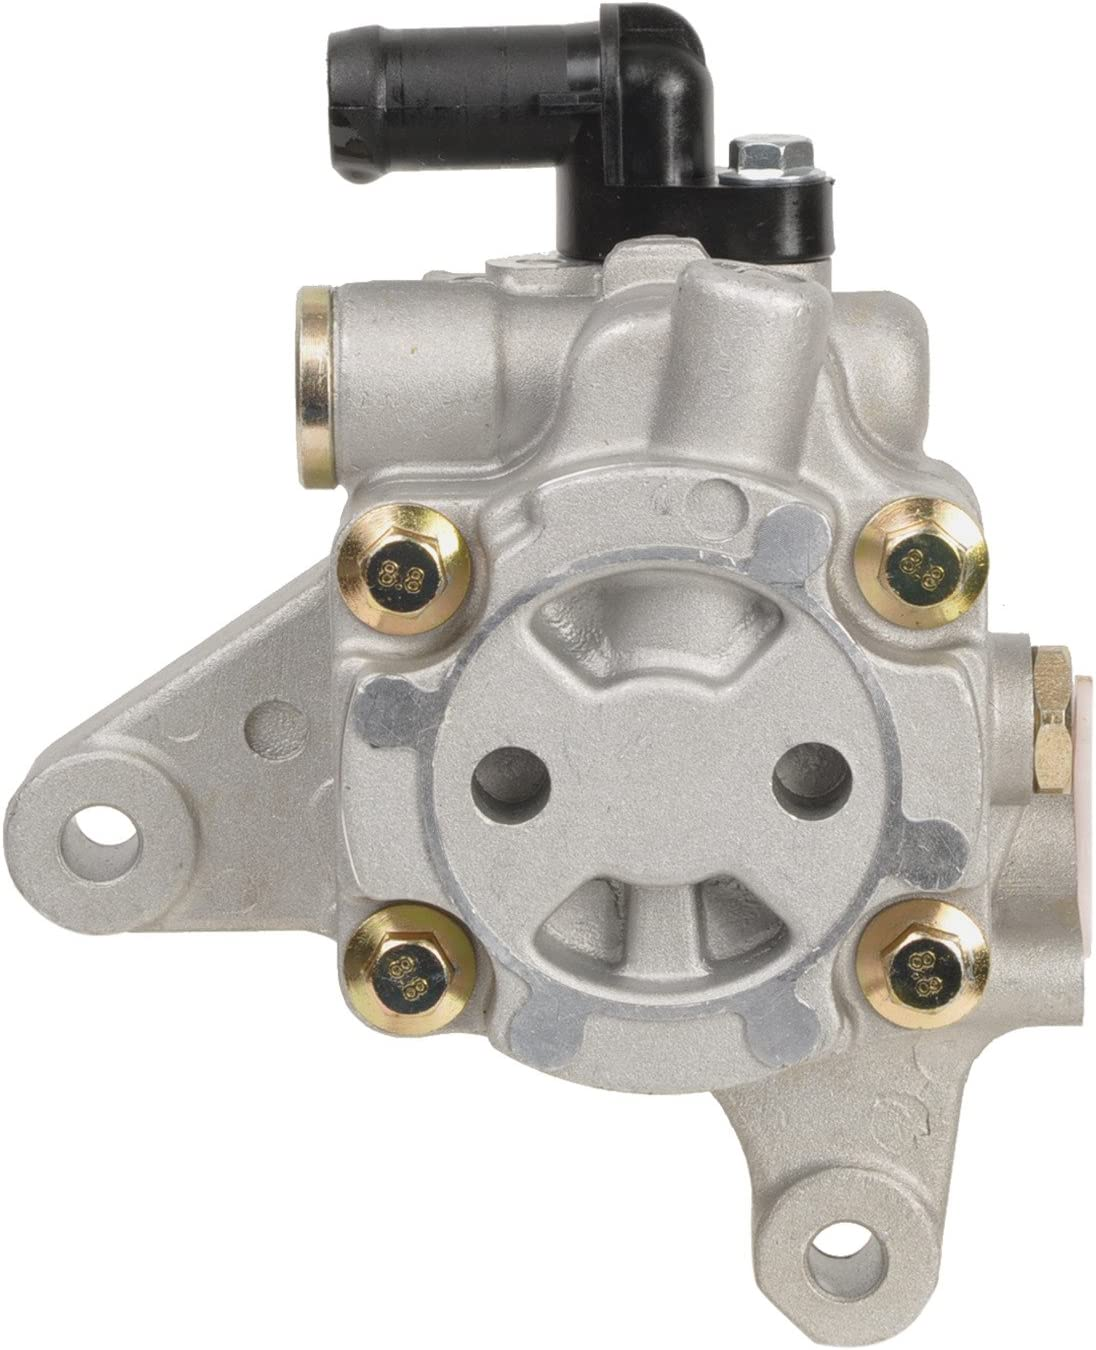 Cardone Select 96-5341 New Power Steering Pump without Reservoir